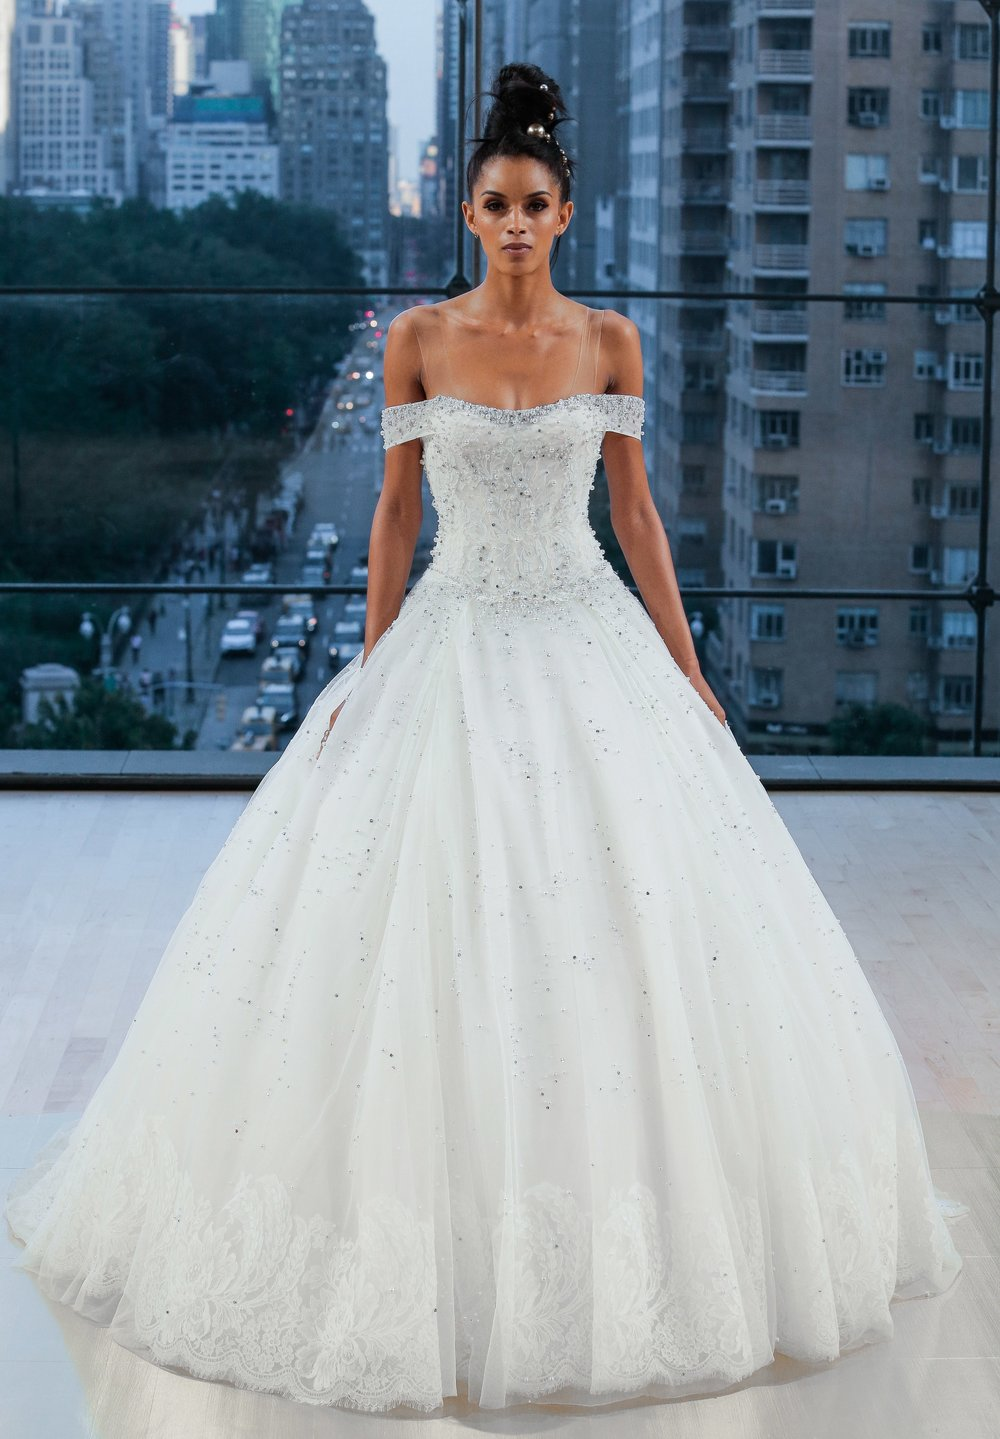 Bridal Fall 2018 Couture   ASTOR    INQUIRE